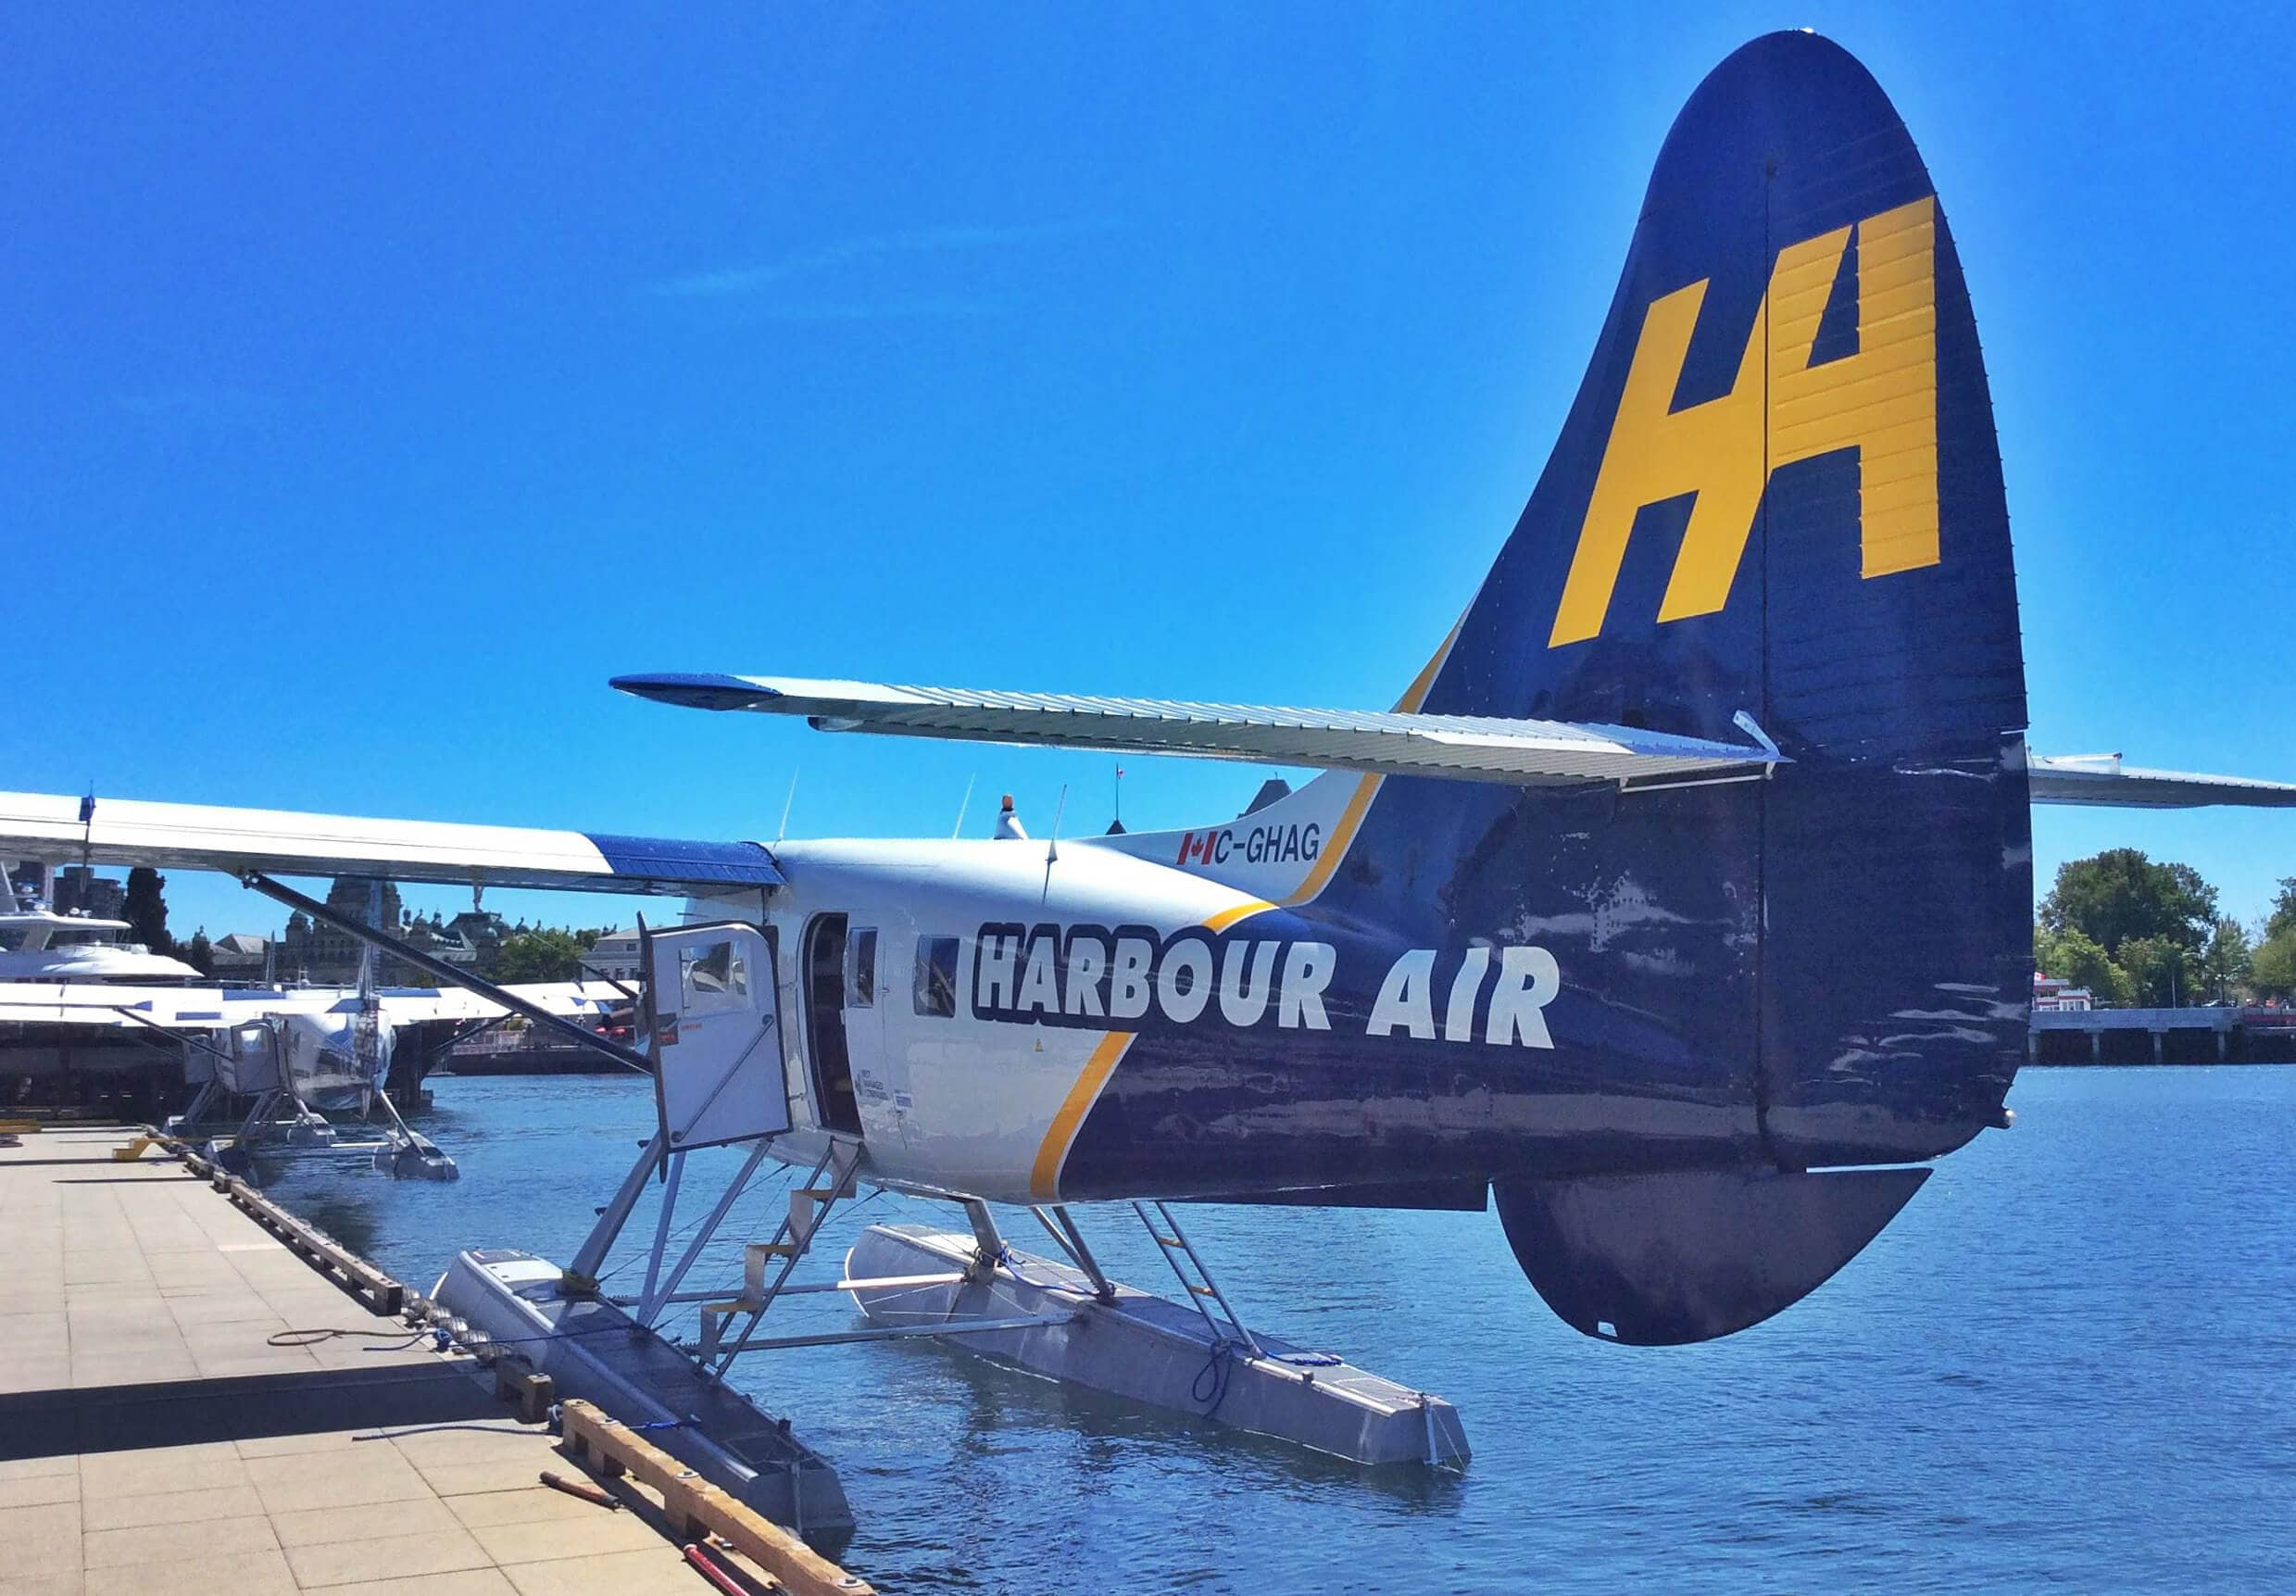 20 of the most unforgettable travel experiences in the world - A seaplane in Victoria, BC